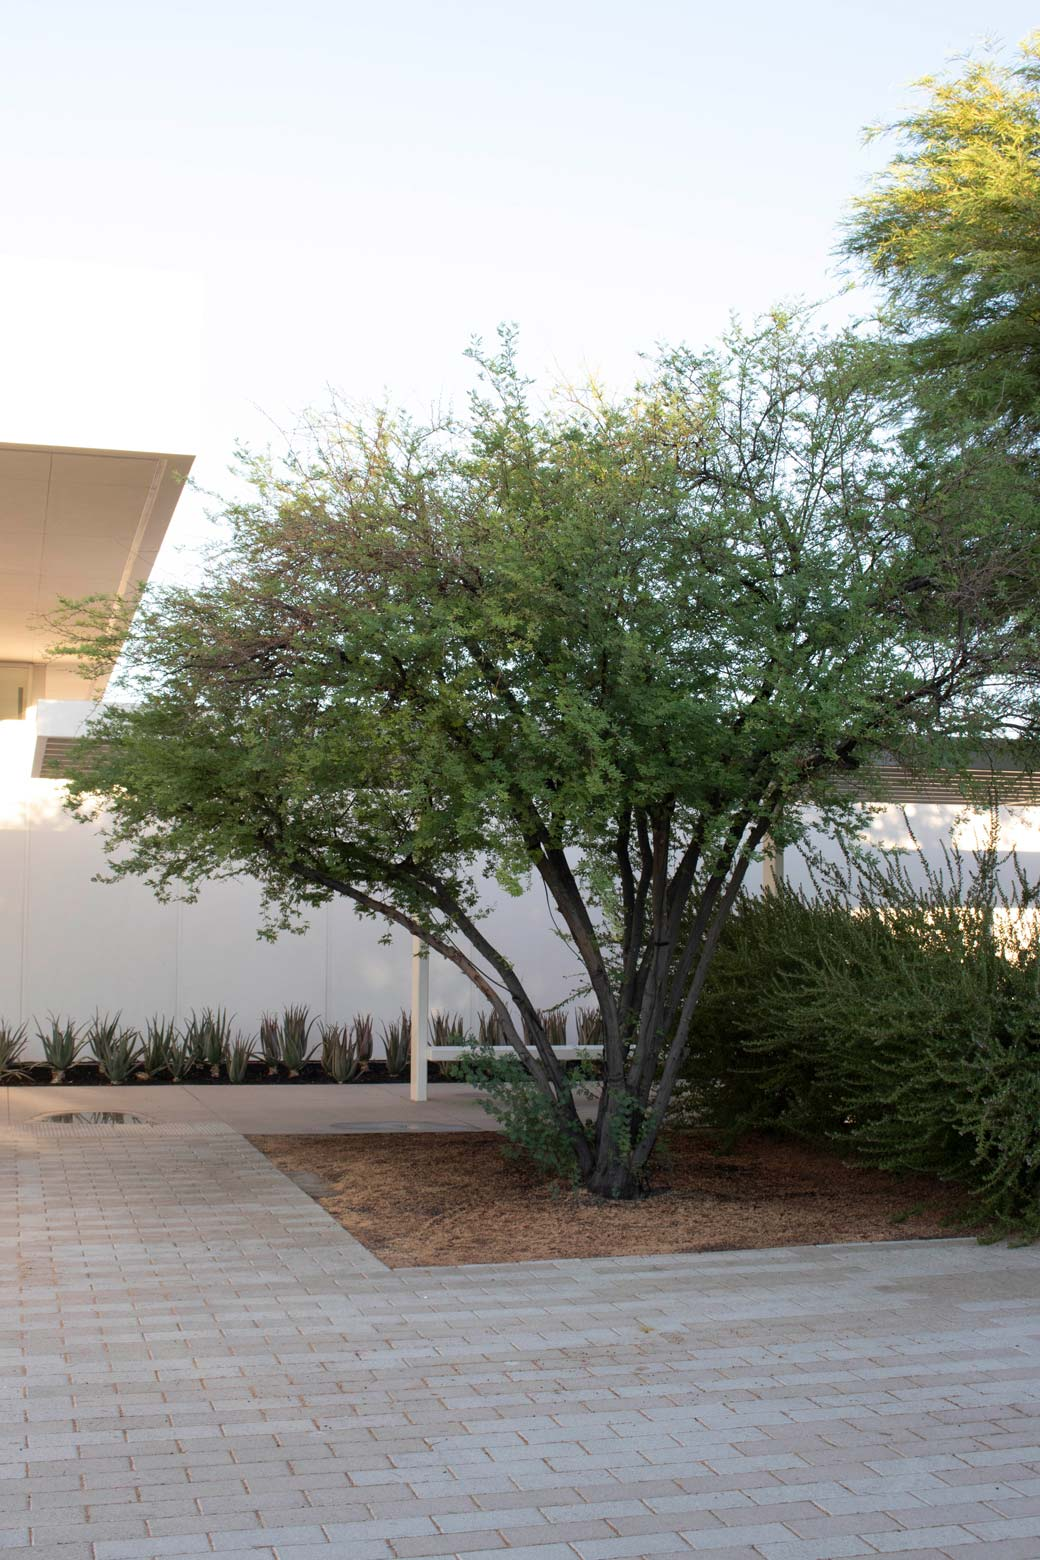 A Sweet Acacia tree, without blooms, in the corner of the circular drive at the entrance to Sunnylands Center and Gardens.